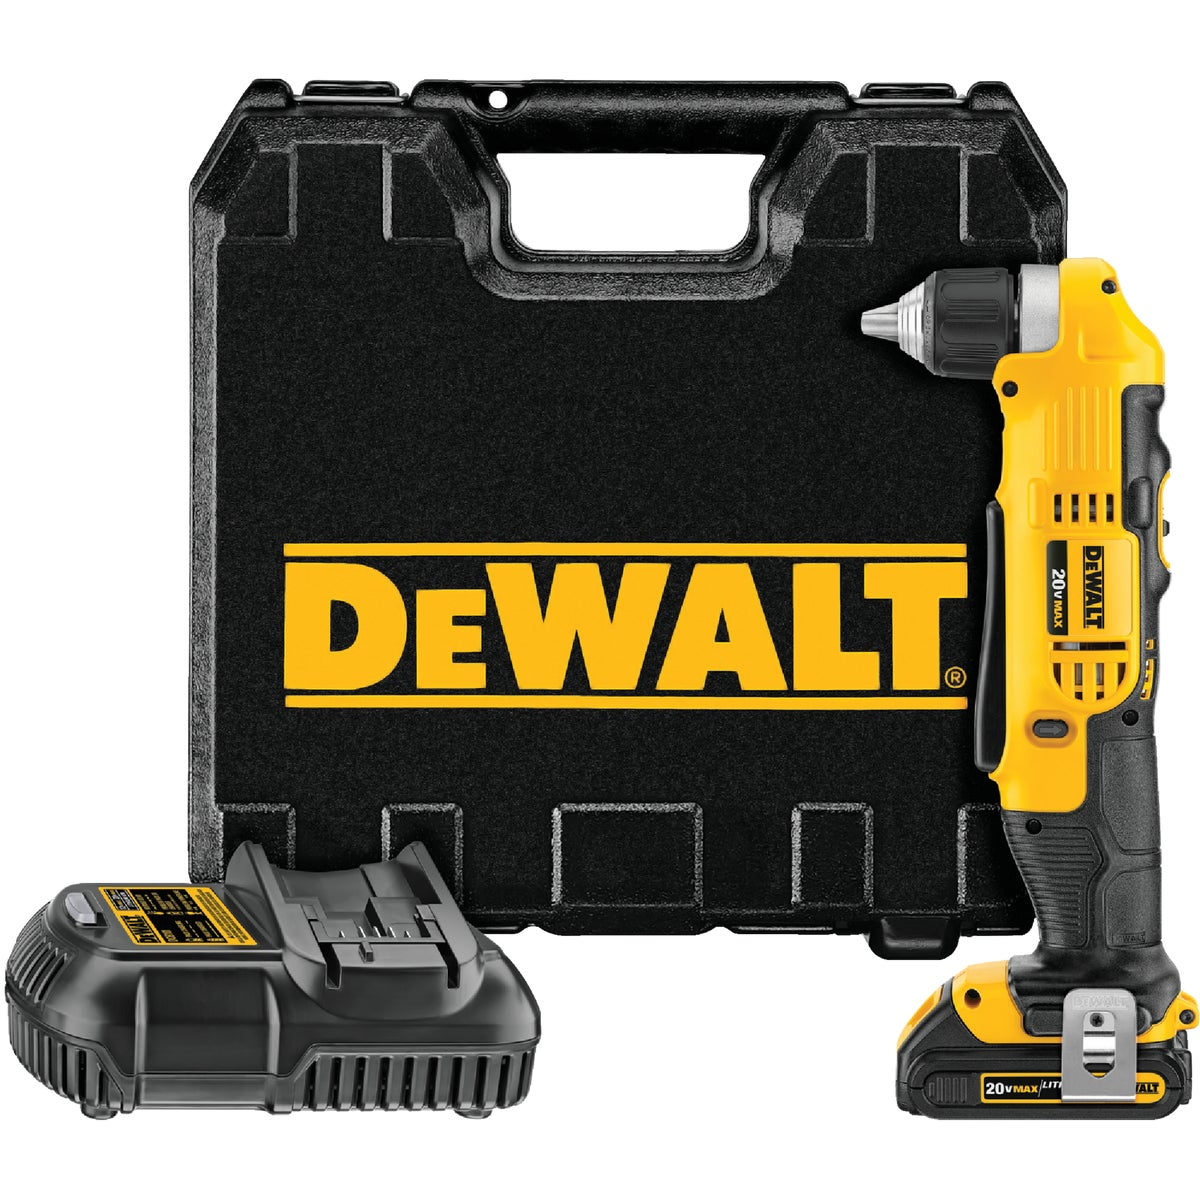 20V MAX RT ANGLE DRILL - DCD740C1 by DeWalt